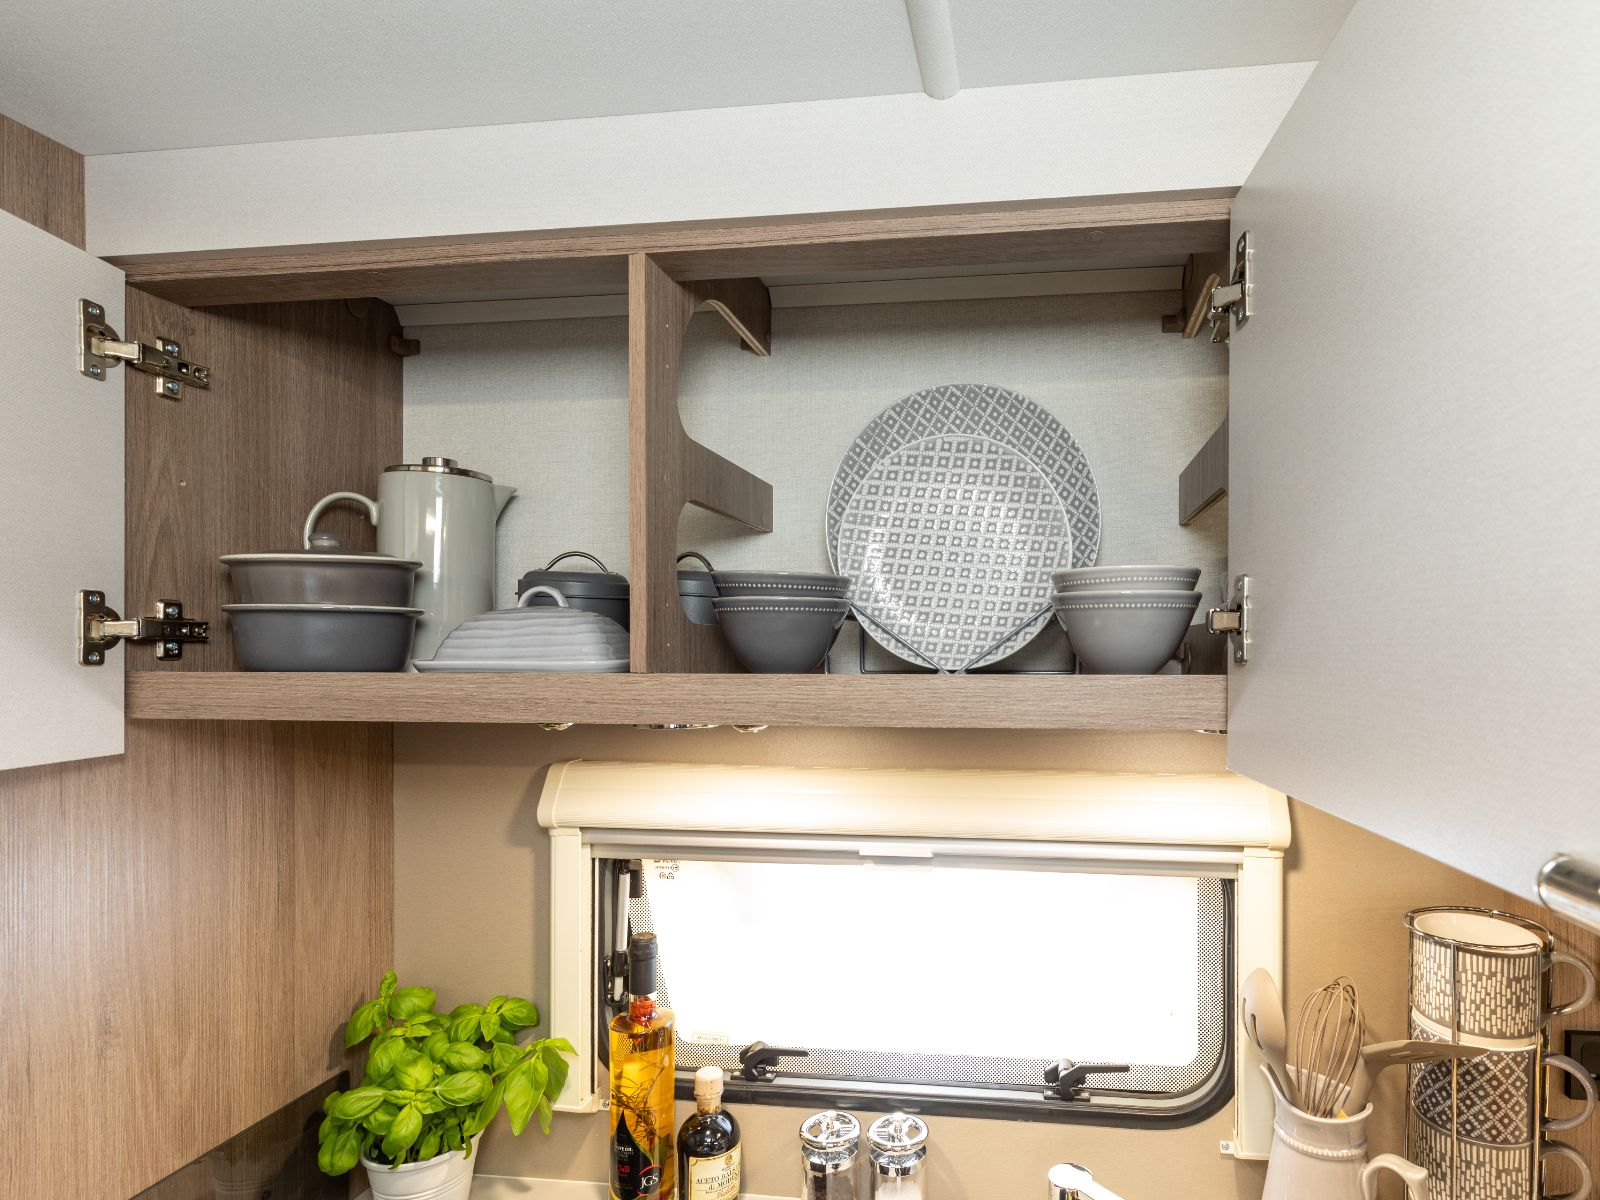 Overhead storage for plates and bowls'